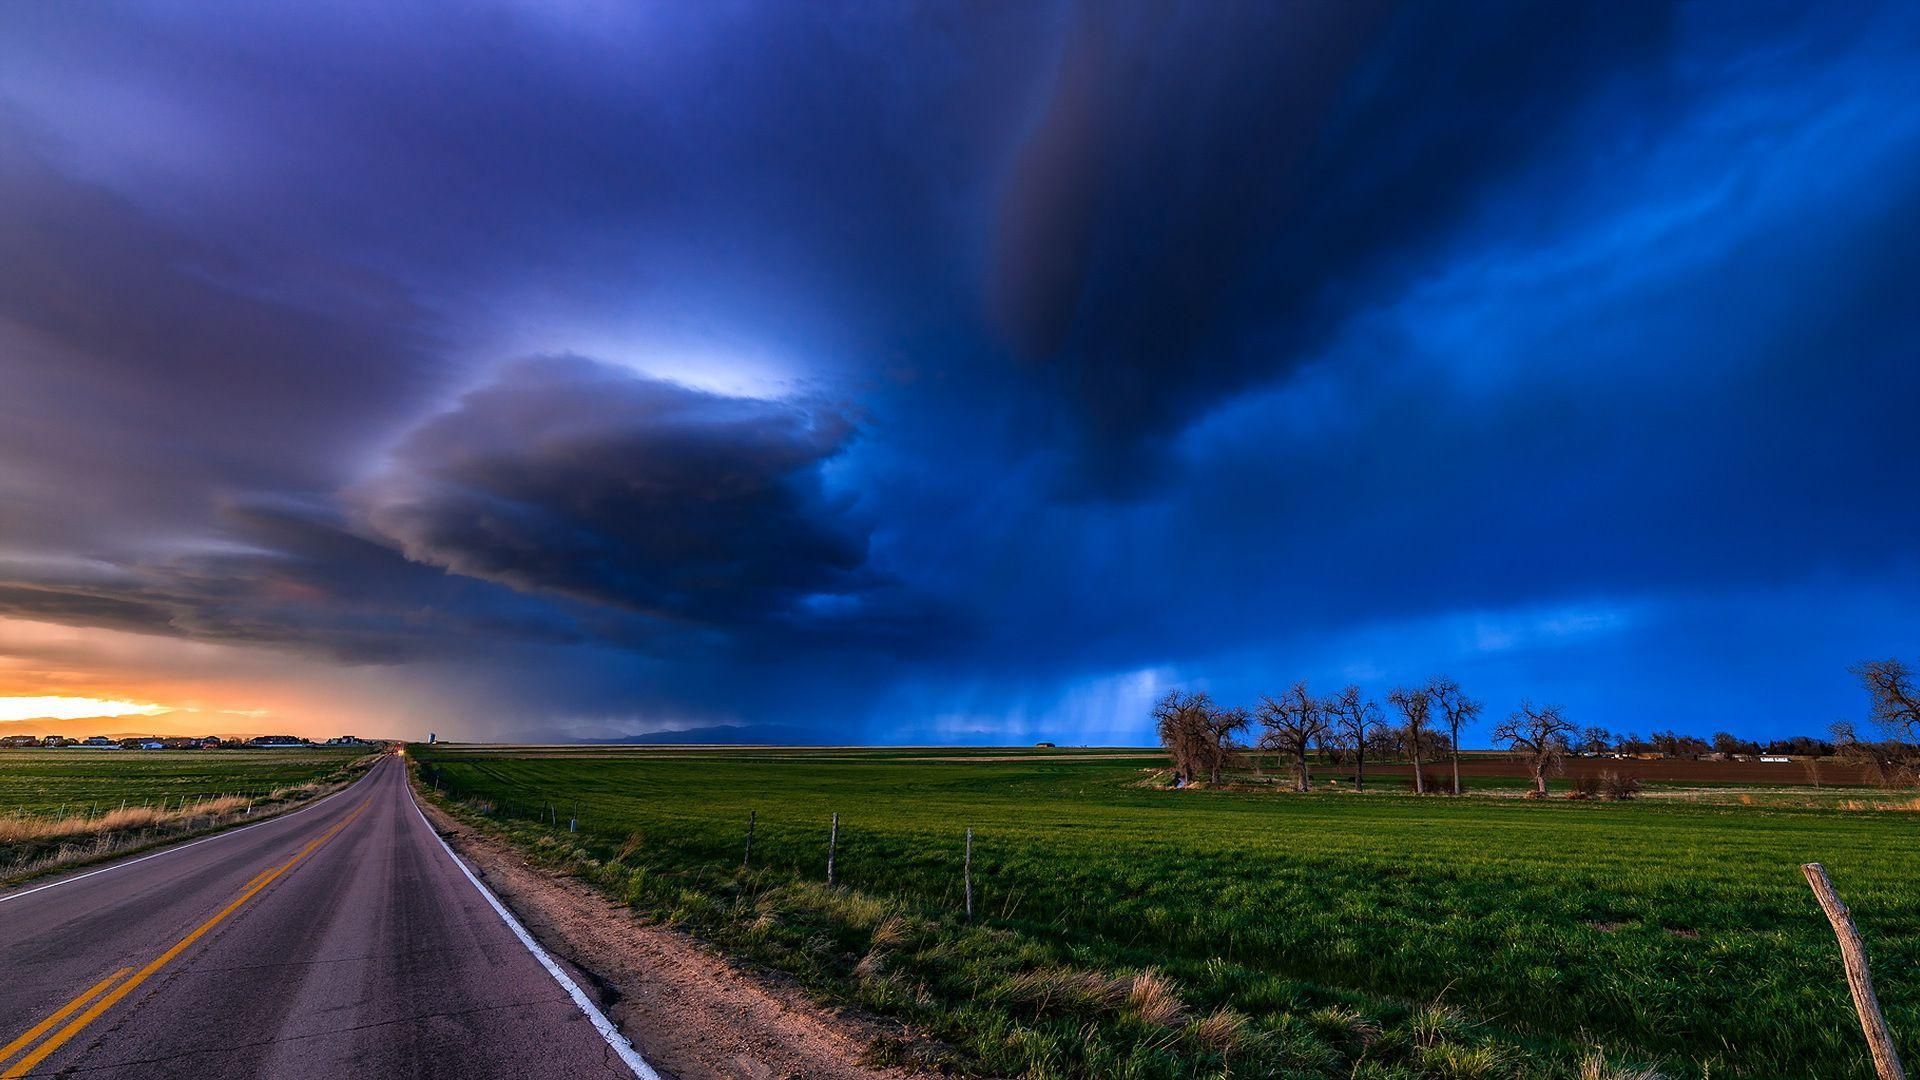 Microsoft Animated Wallpaper Hd Stormy Clouds Above The Road Wallpaper Download Free